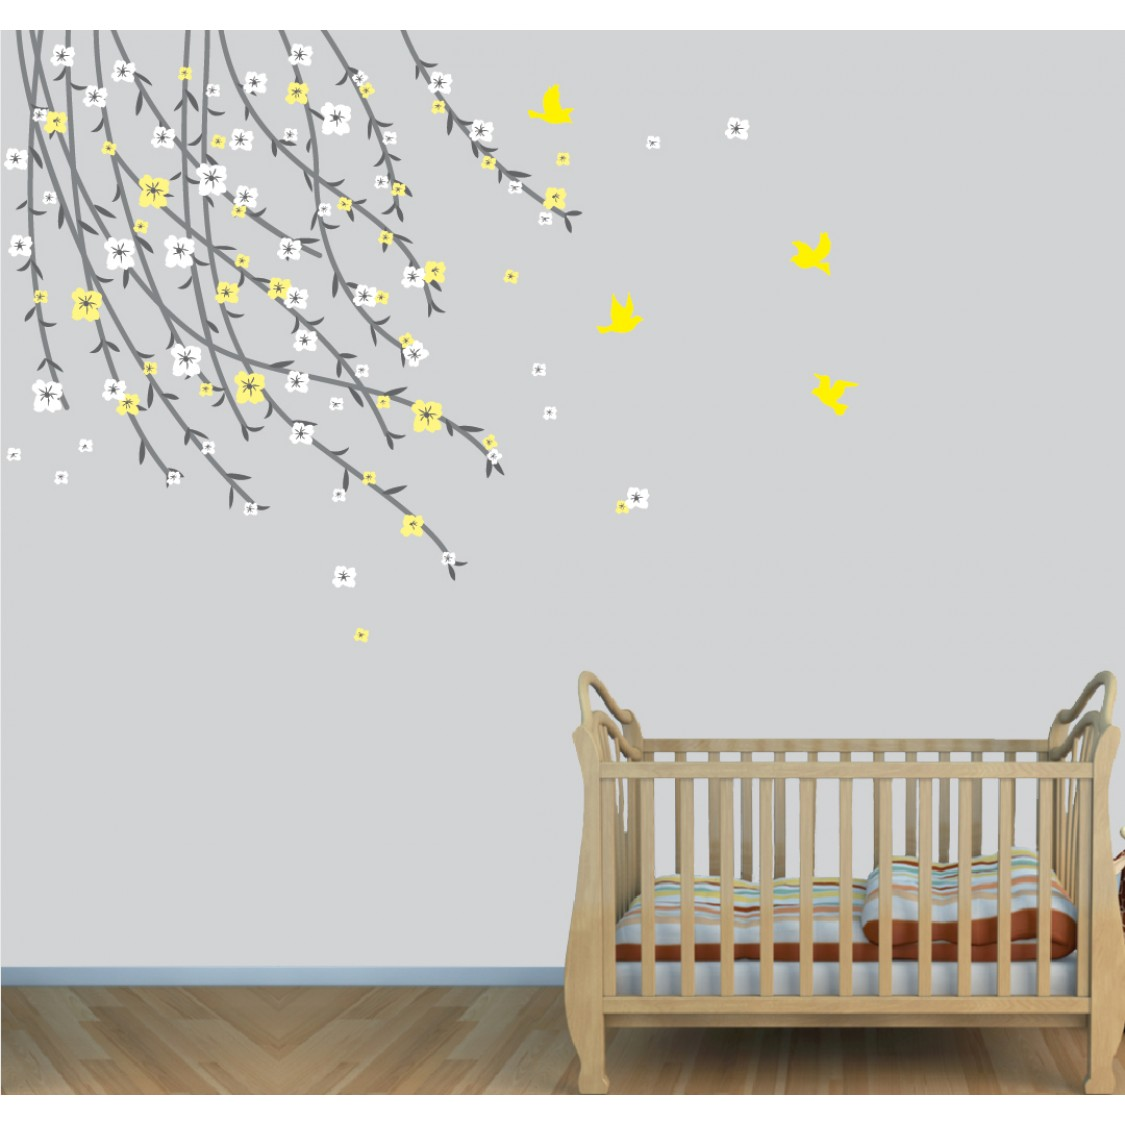 Colorful and Flowering Branch Tree For Nursery Or Baby Room